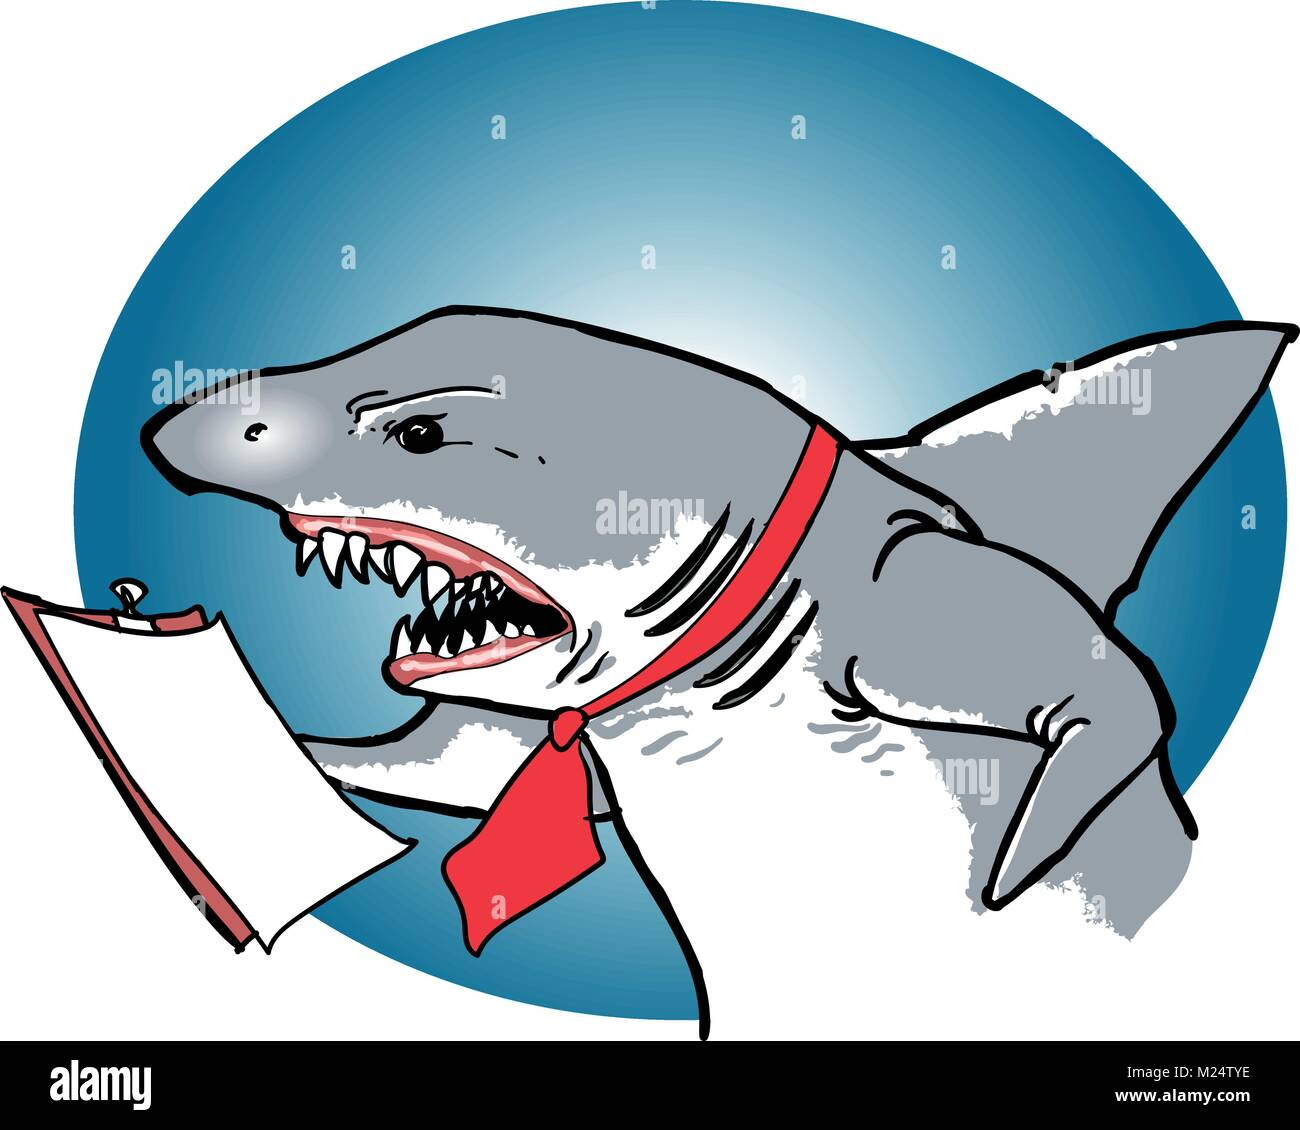 the manager shark so angry funny business vignette cartoon style